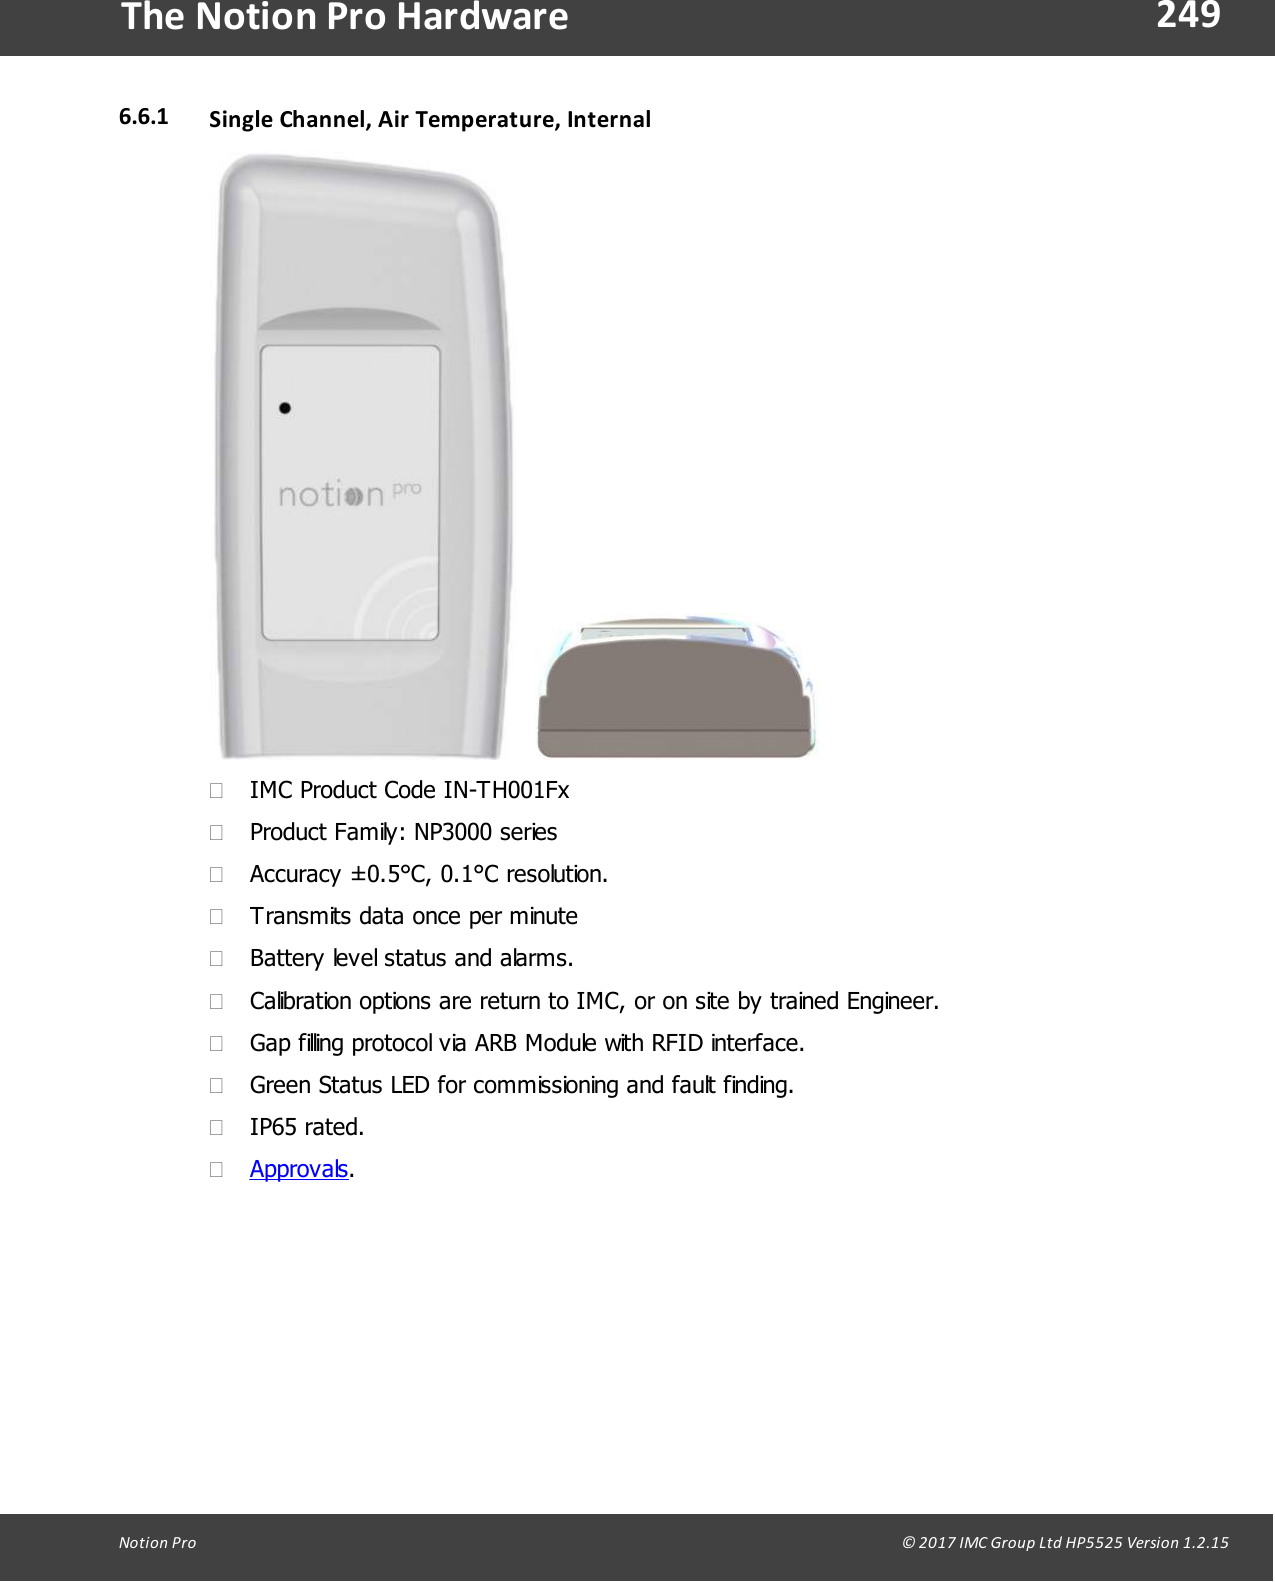 The IMC Group IN-TH001F2 Notion Pro Transmitter User Manual